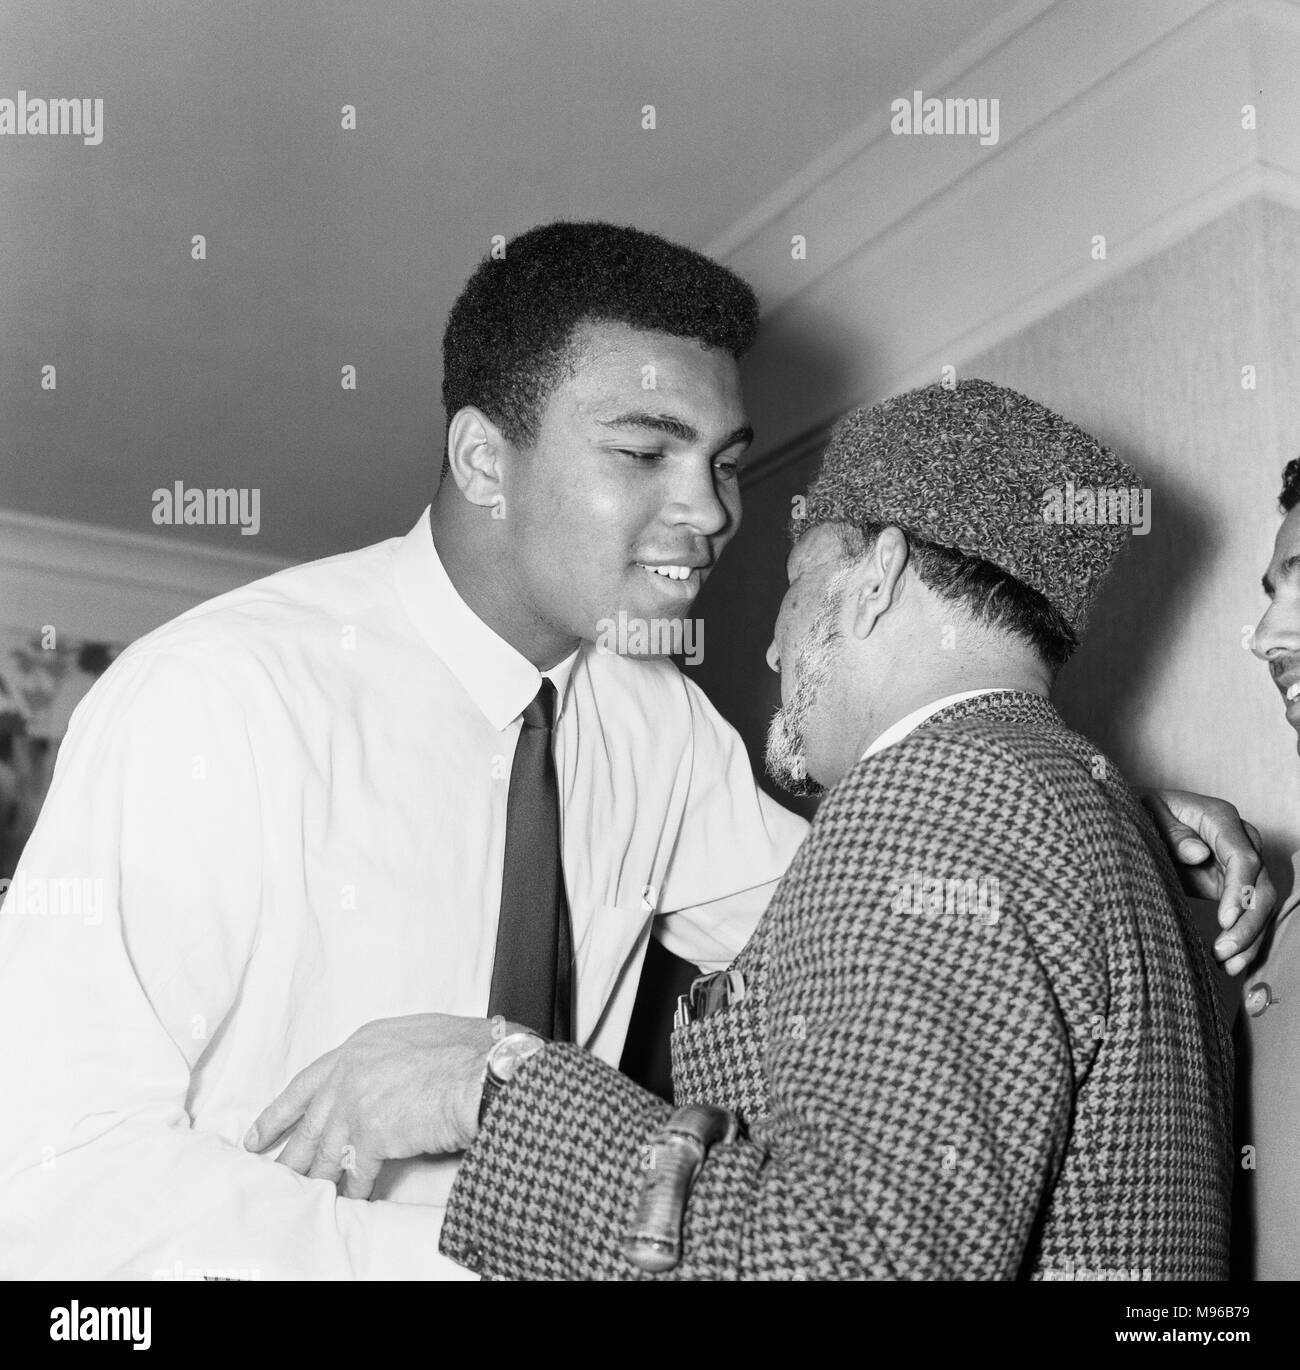 Muhammad ali cassius clay greeting muslims at a public speaking muhammad ali cassius clay greeting muslims at a public speaking about islam ali is in london for of his rematch with british heavyweight henry cooper to m4hsunfo